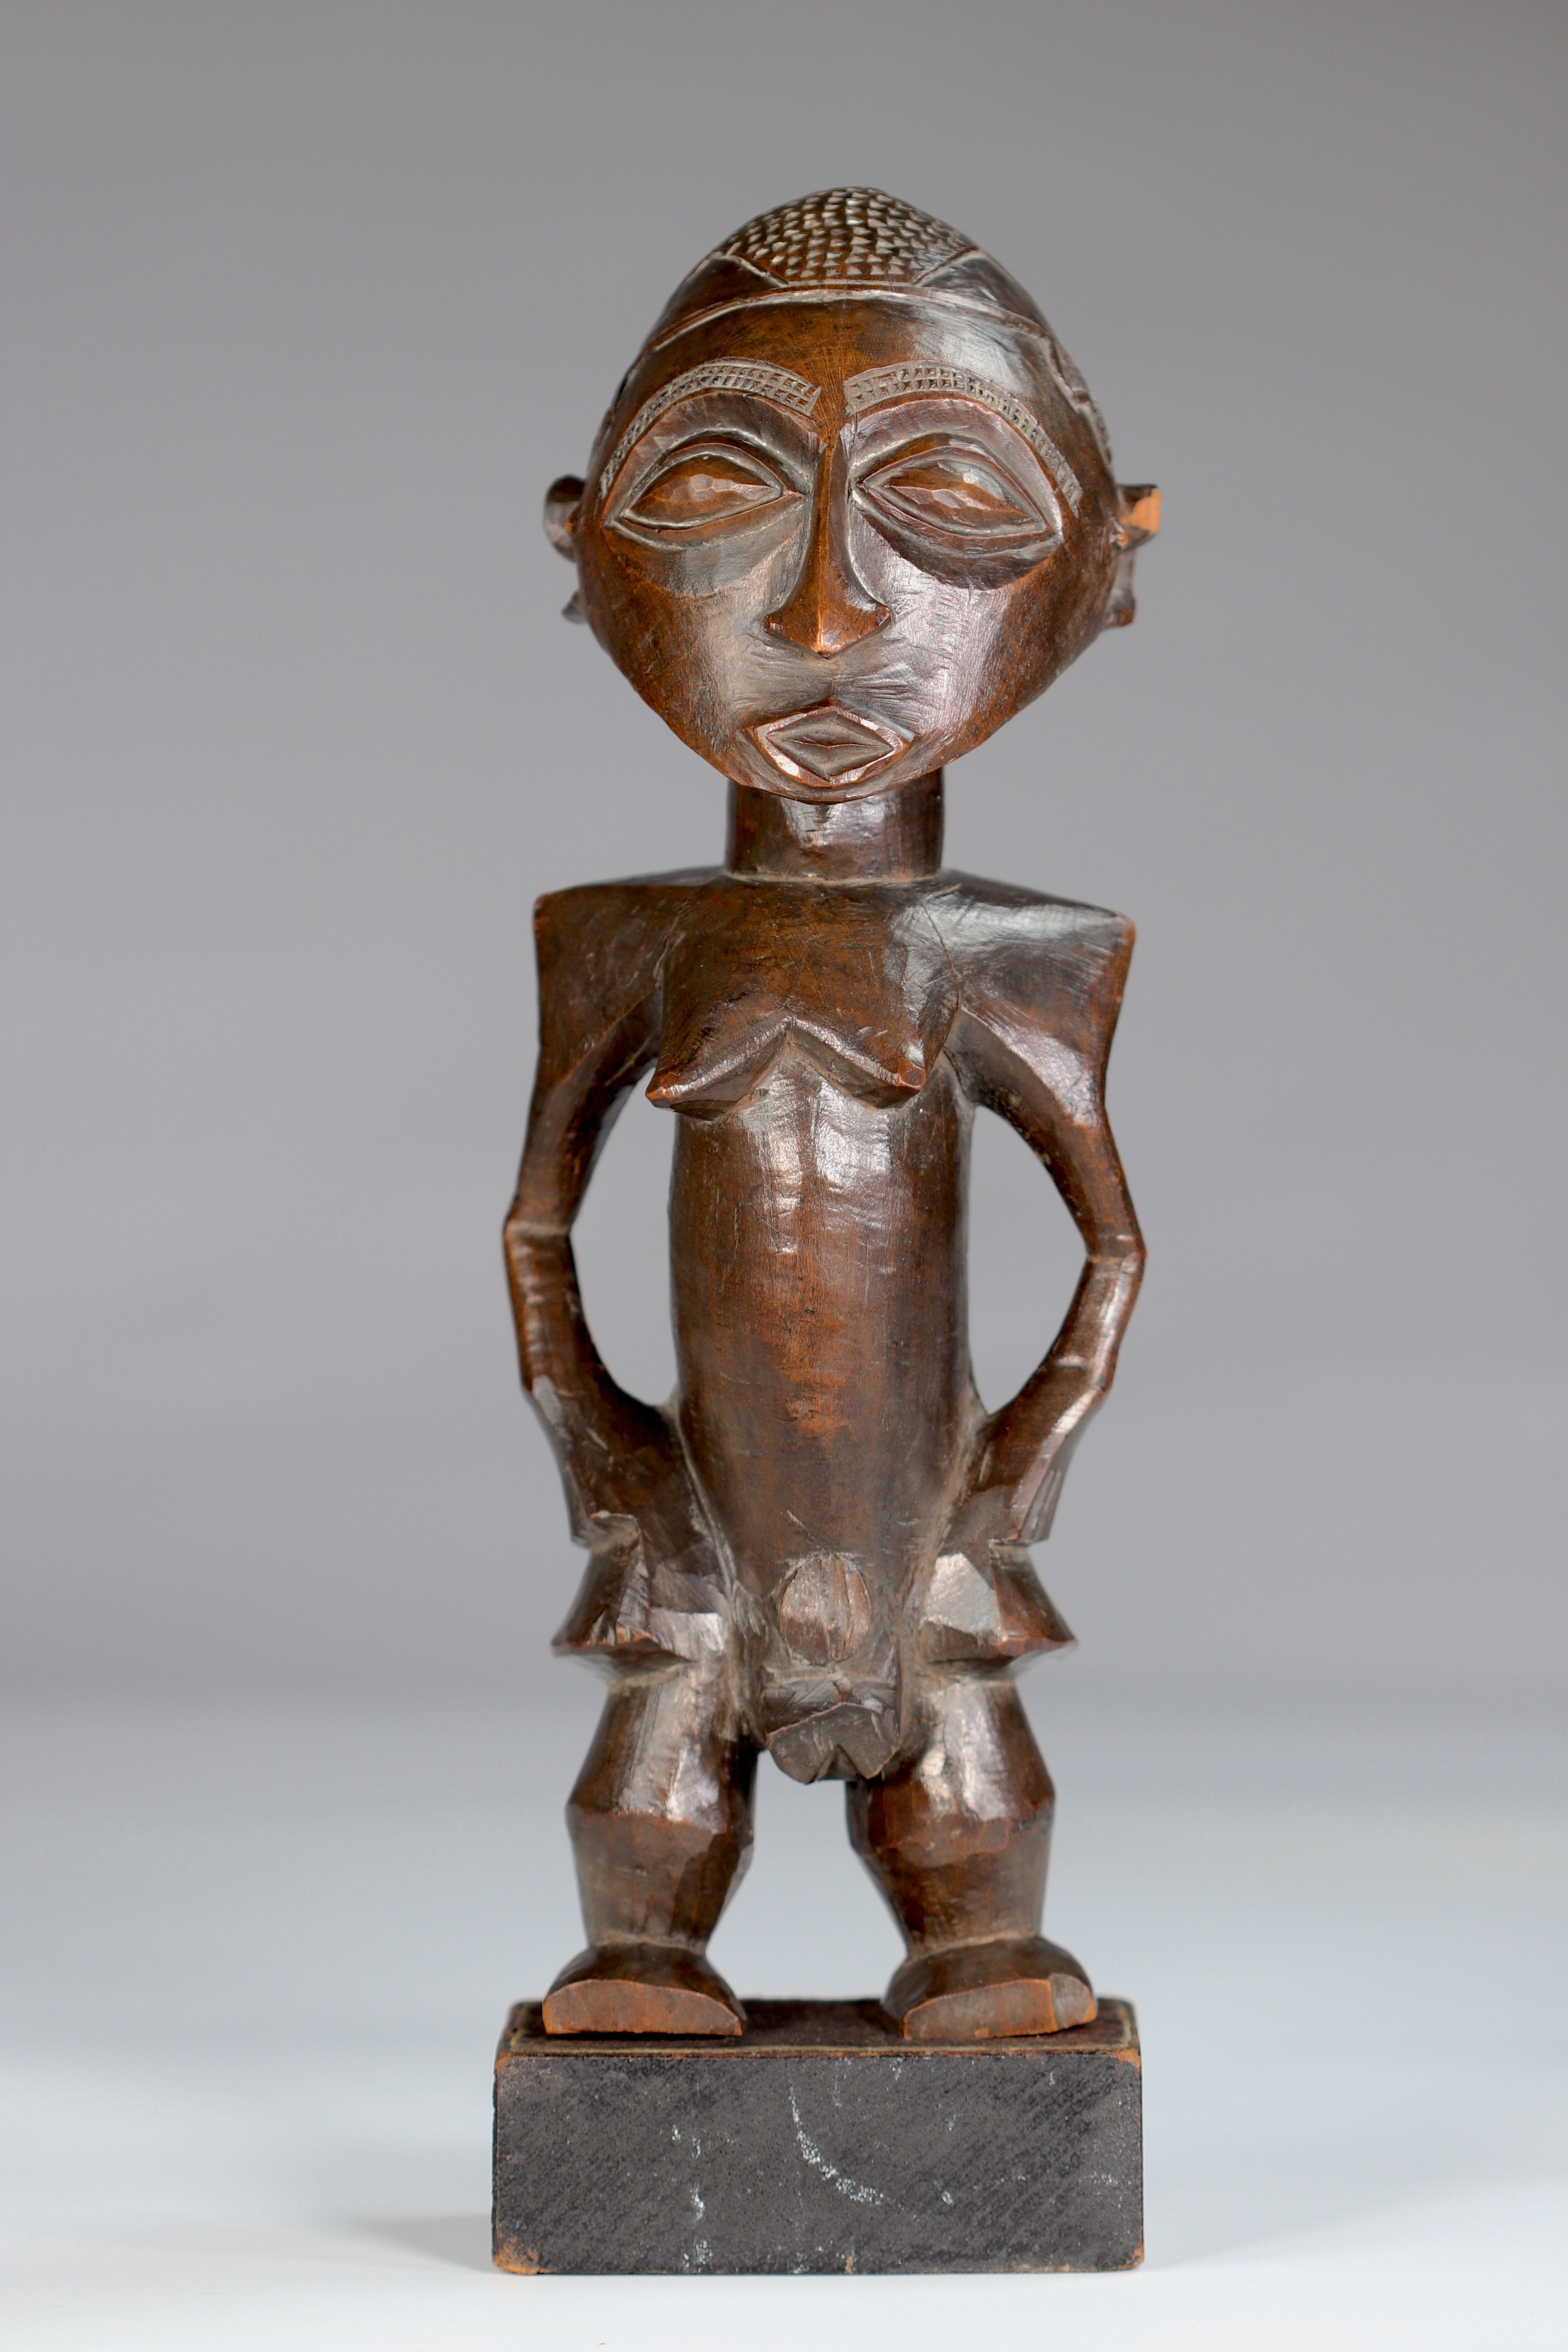 Rare Statue Wongo ca 1930 prov :, B. De Bruyn Netherlands. This high quality sculpture is distinguis - Image 2 of 5